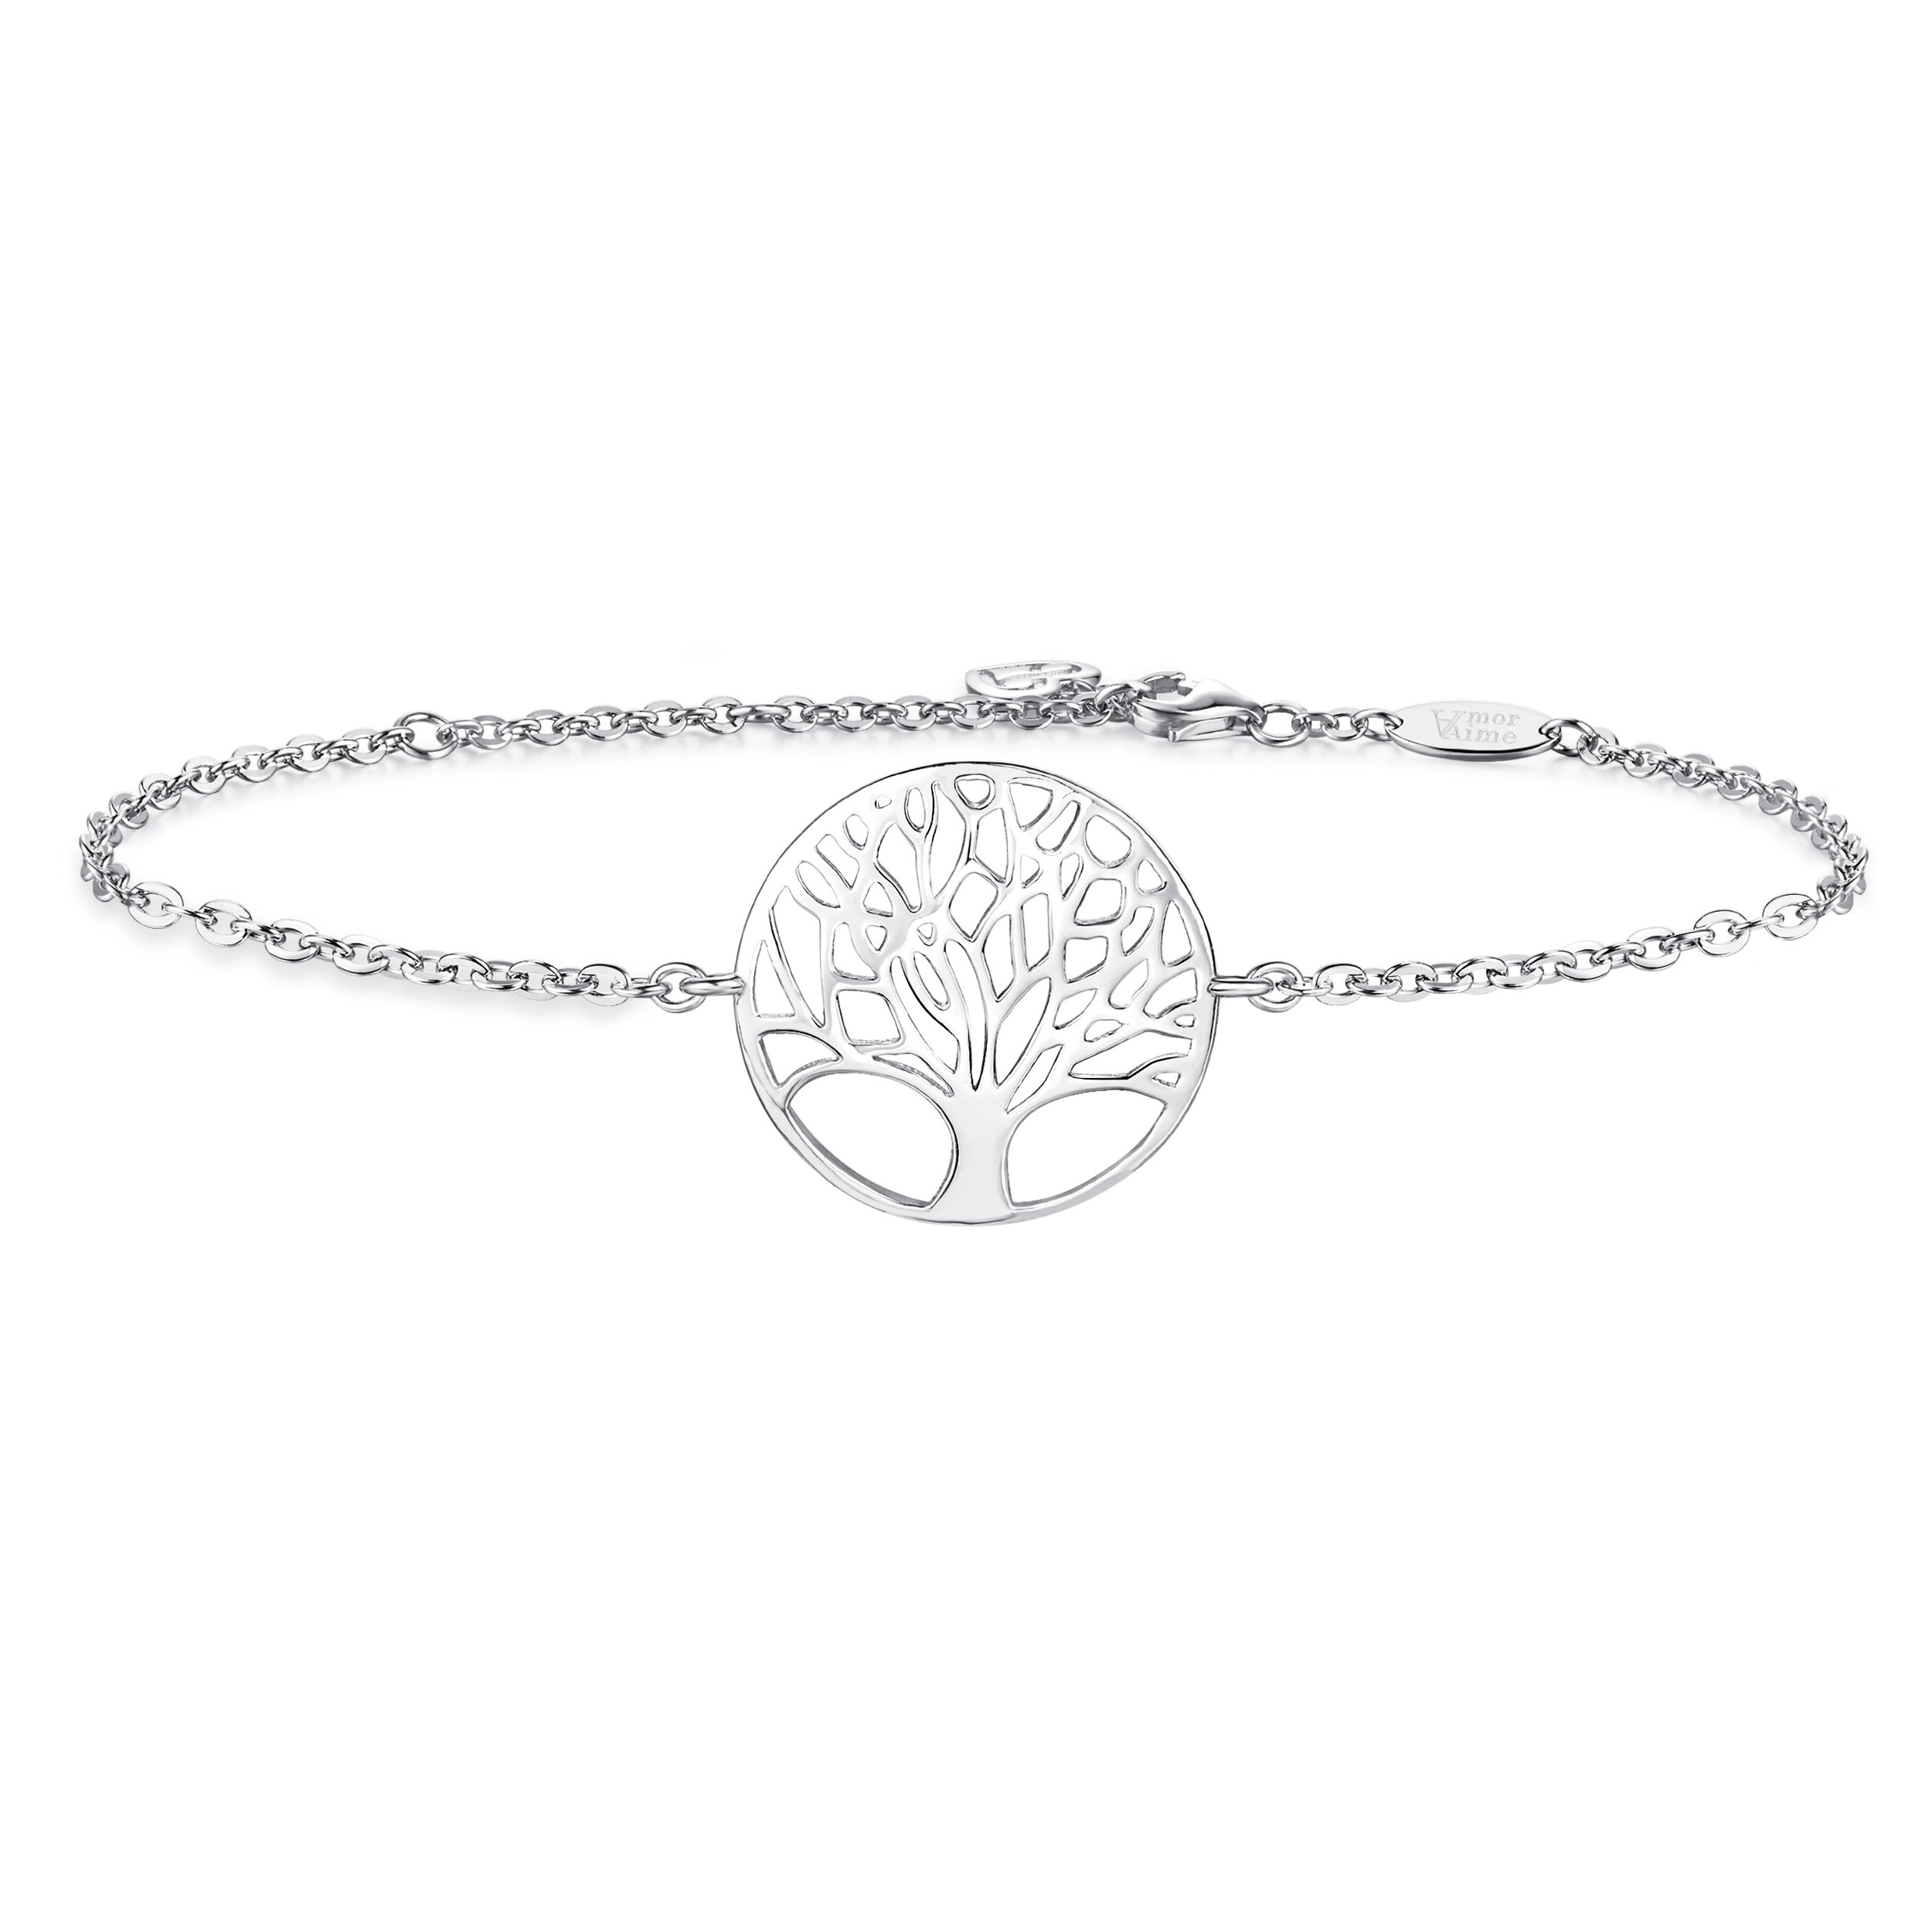 AmorAime Womens 925 Sterling Silver Family Tree of Life Love Symbol Charm Link Bracelet White Gold Plated Adjustable